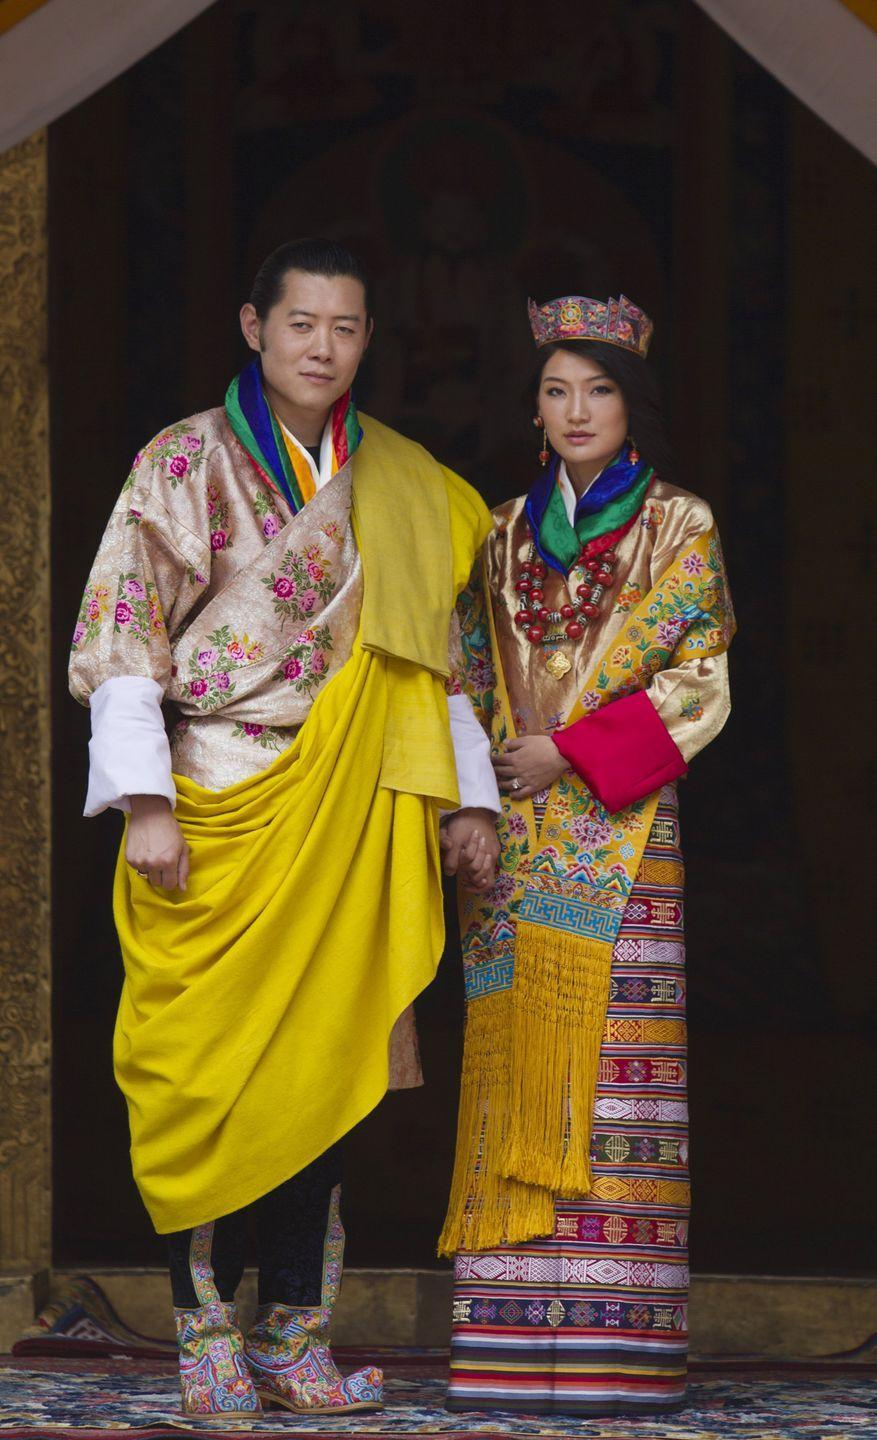 <p>One of Queen Jetsun Pema's most notable outfits was her wedding attire. The look included an elaborate gown with a gold shawl and jacket. Of course, no Queen's outfit is complete without an impressive tiara. </p>